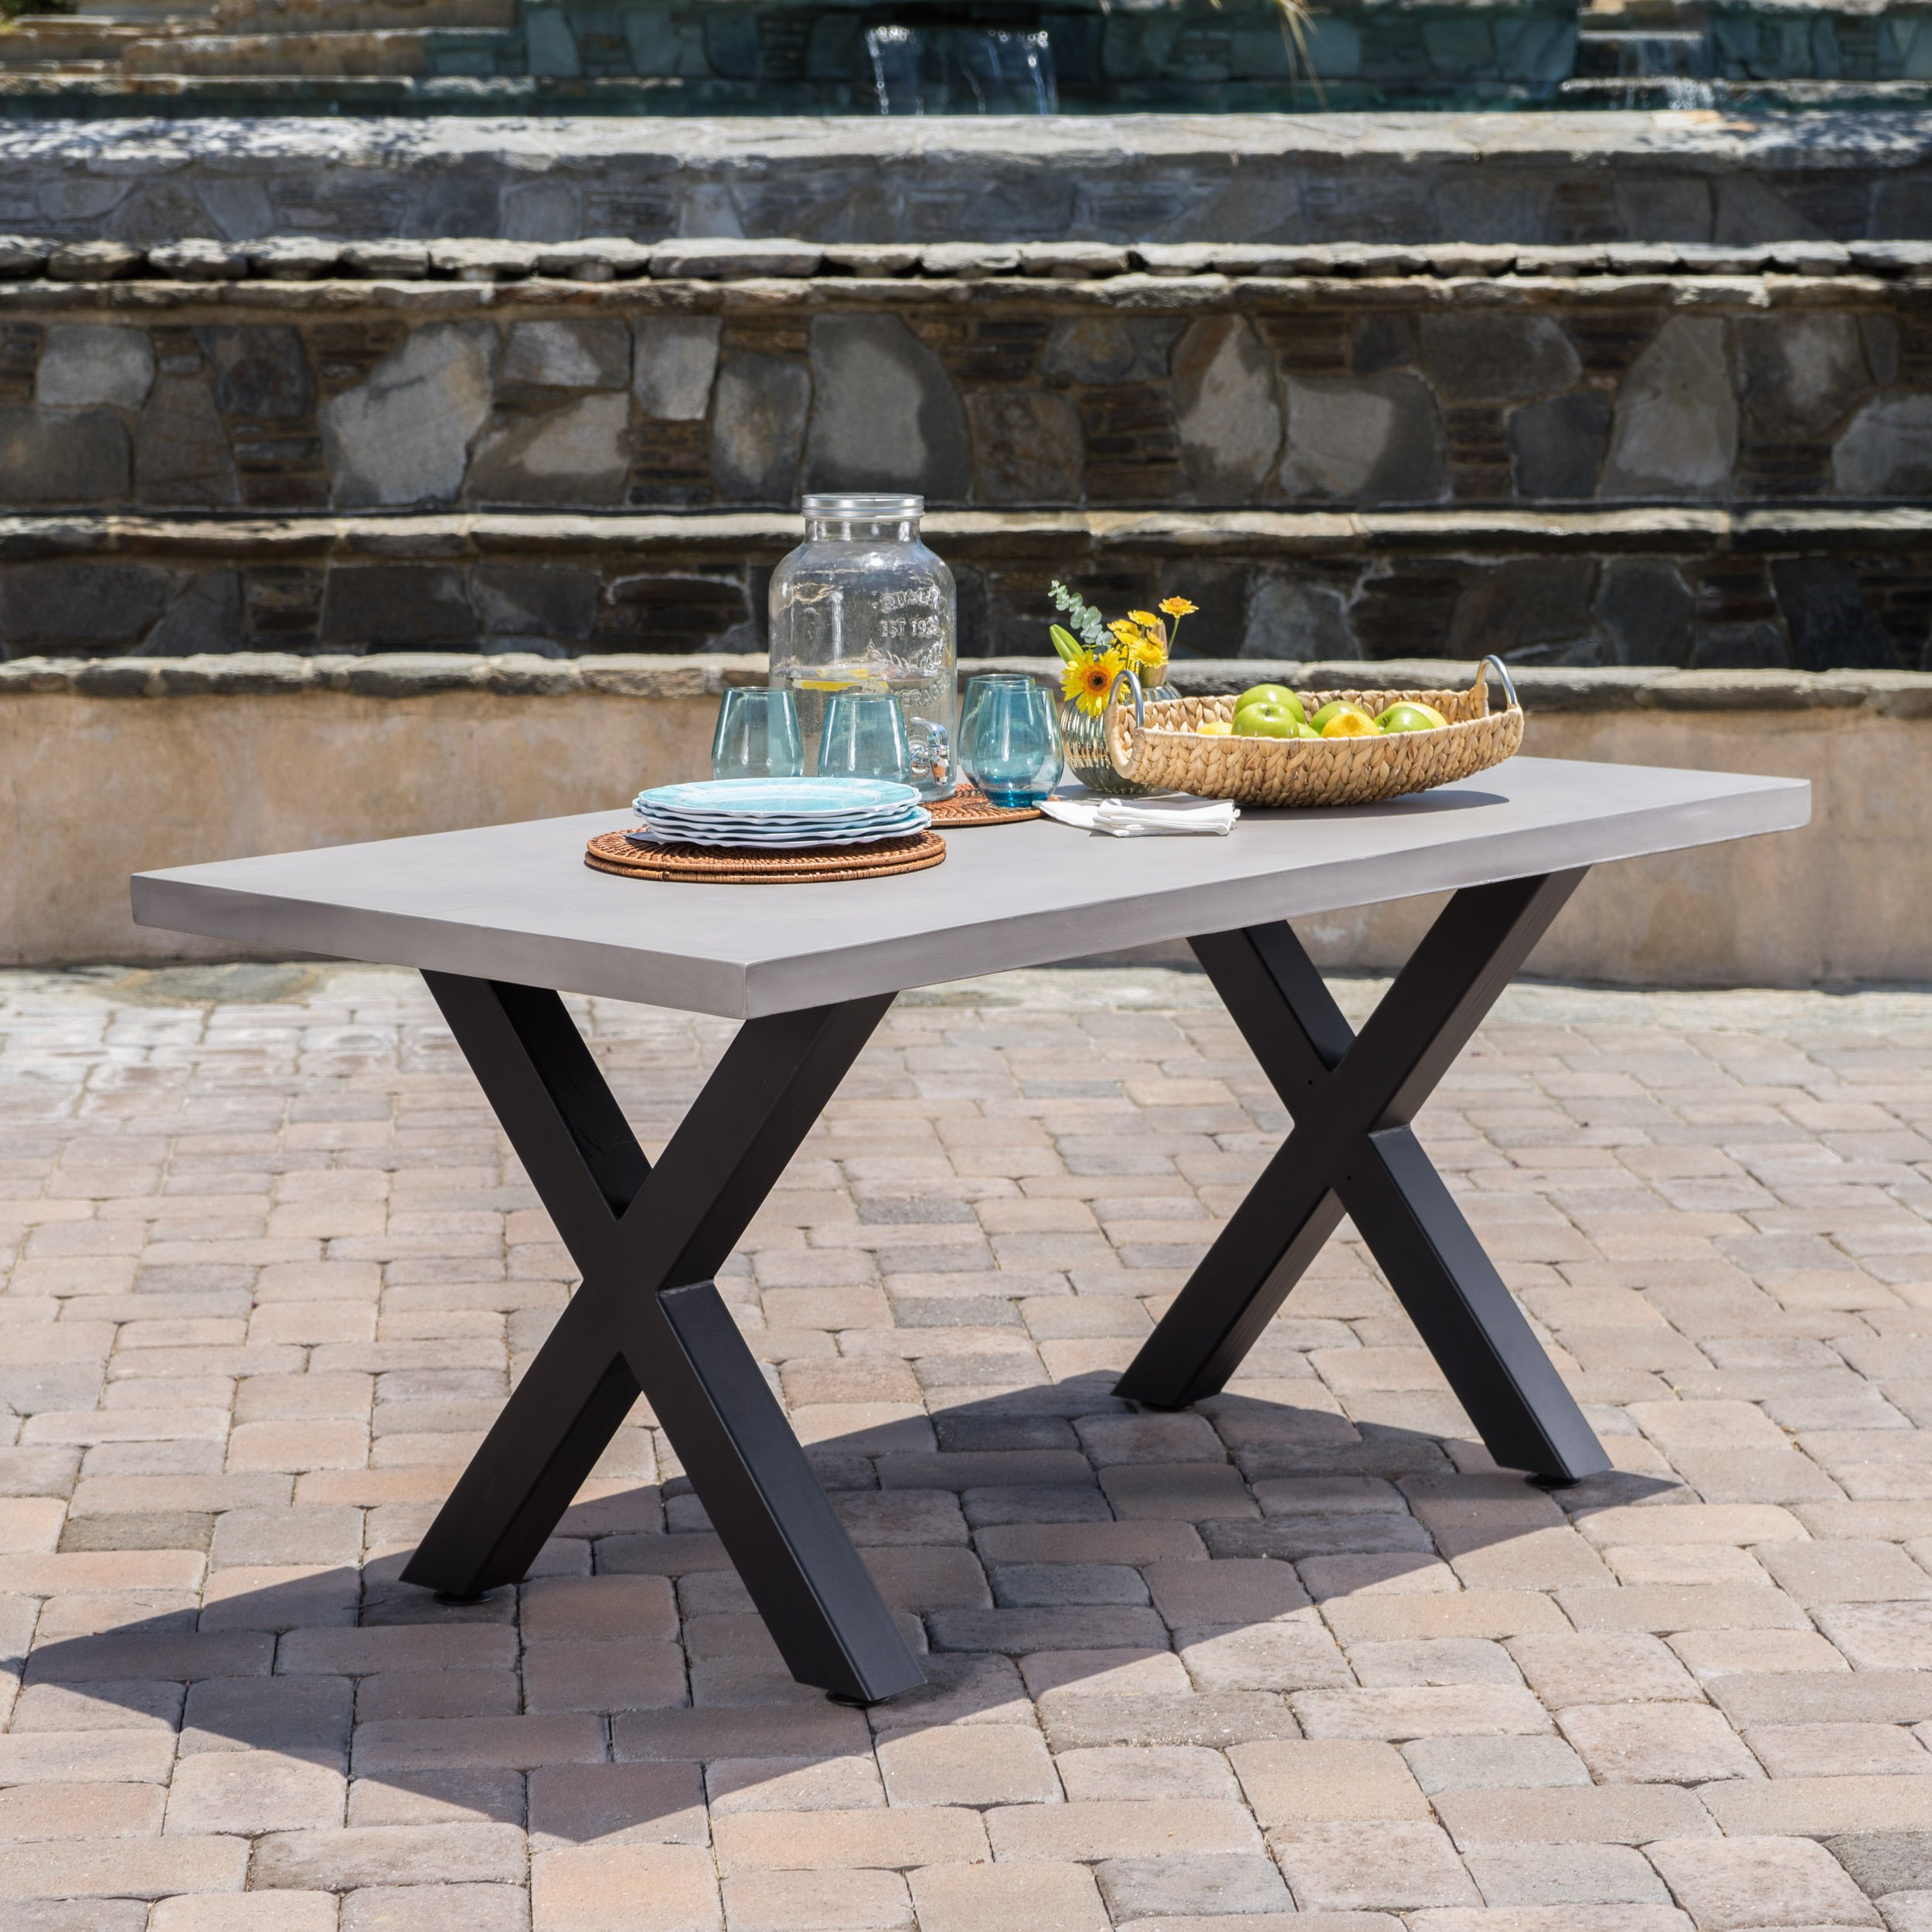 Galatian Outdoor White Light Weight Concrete Dining Table w/ Black Iron Legs by GDF Studio